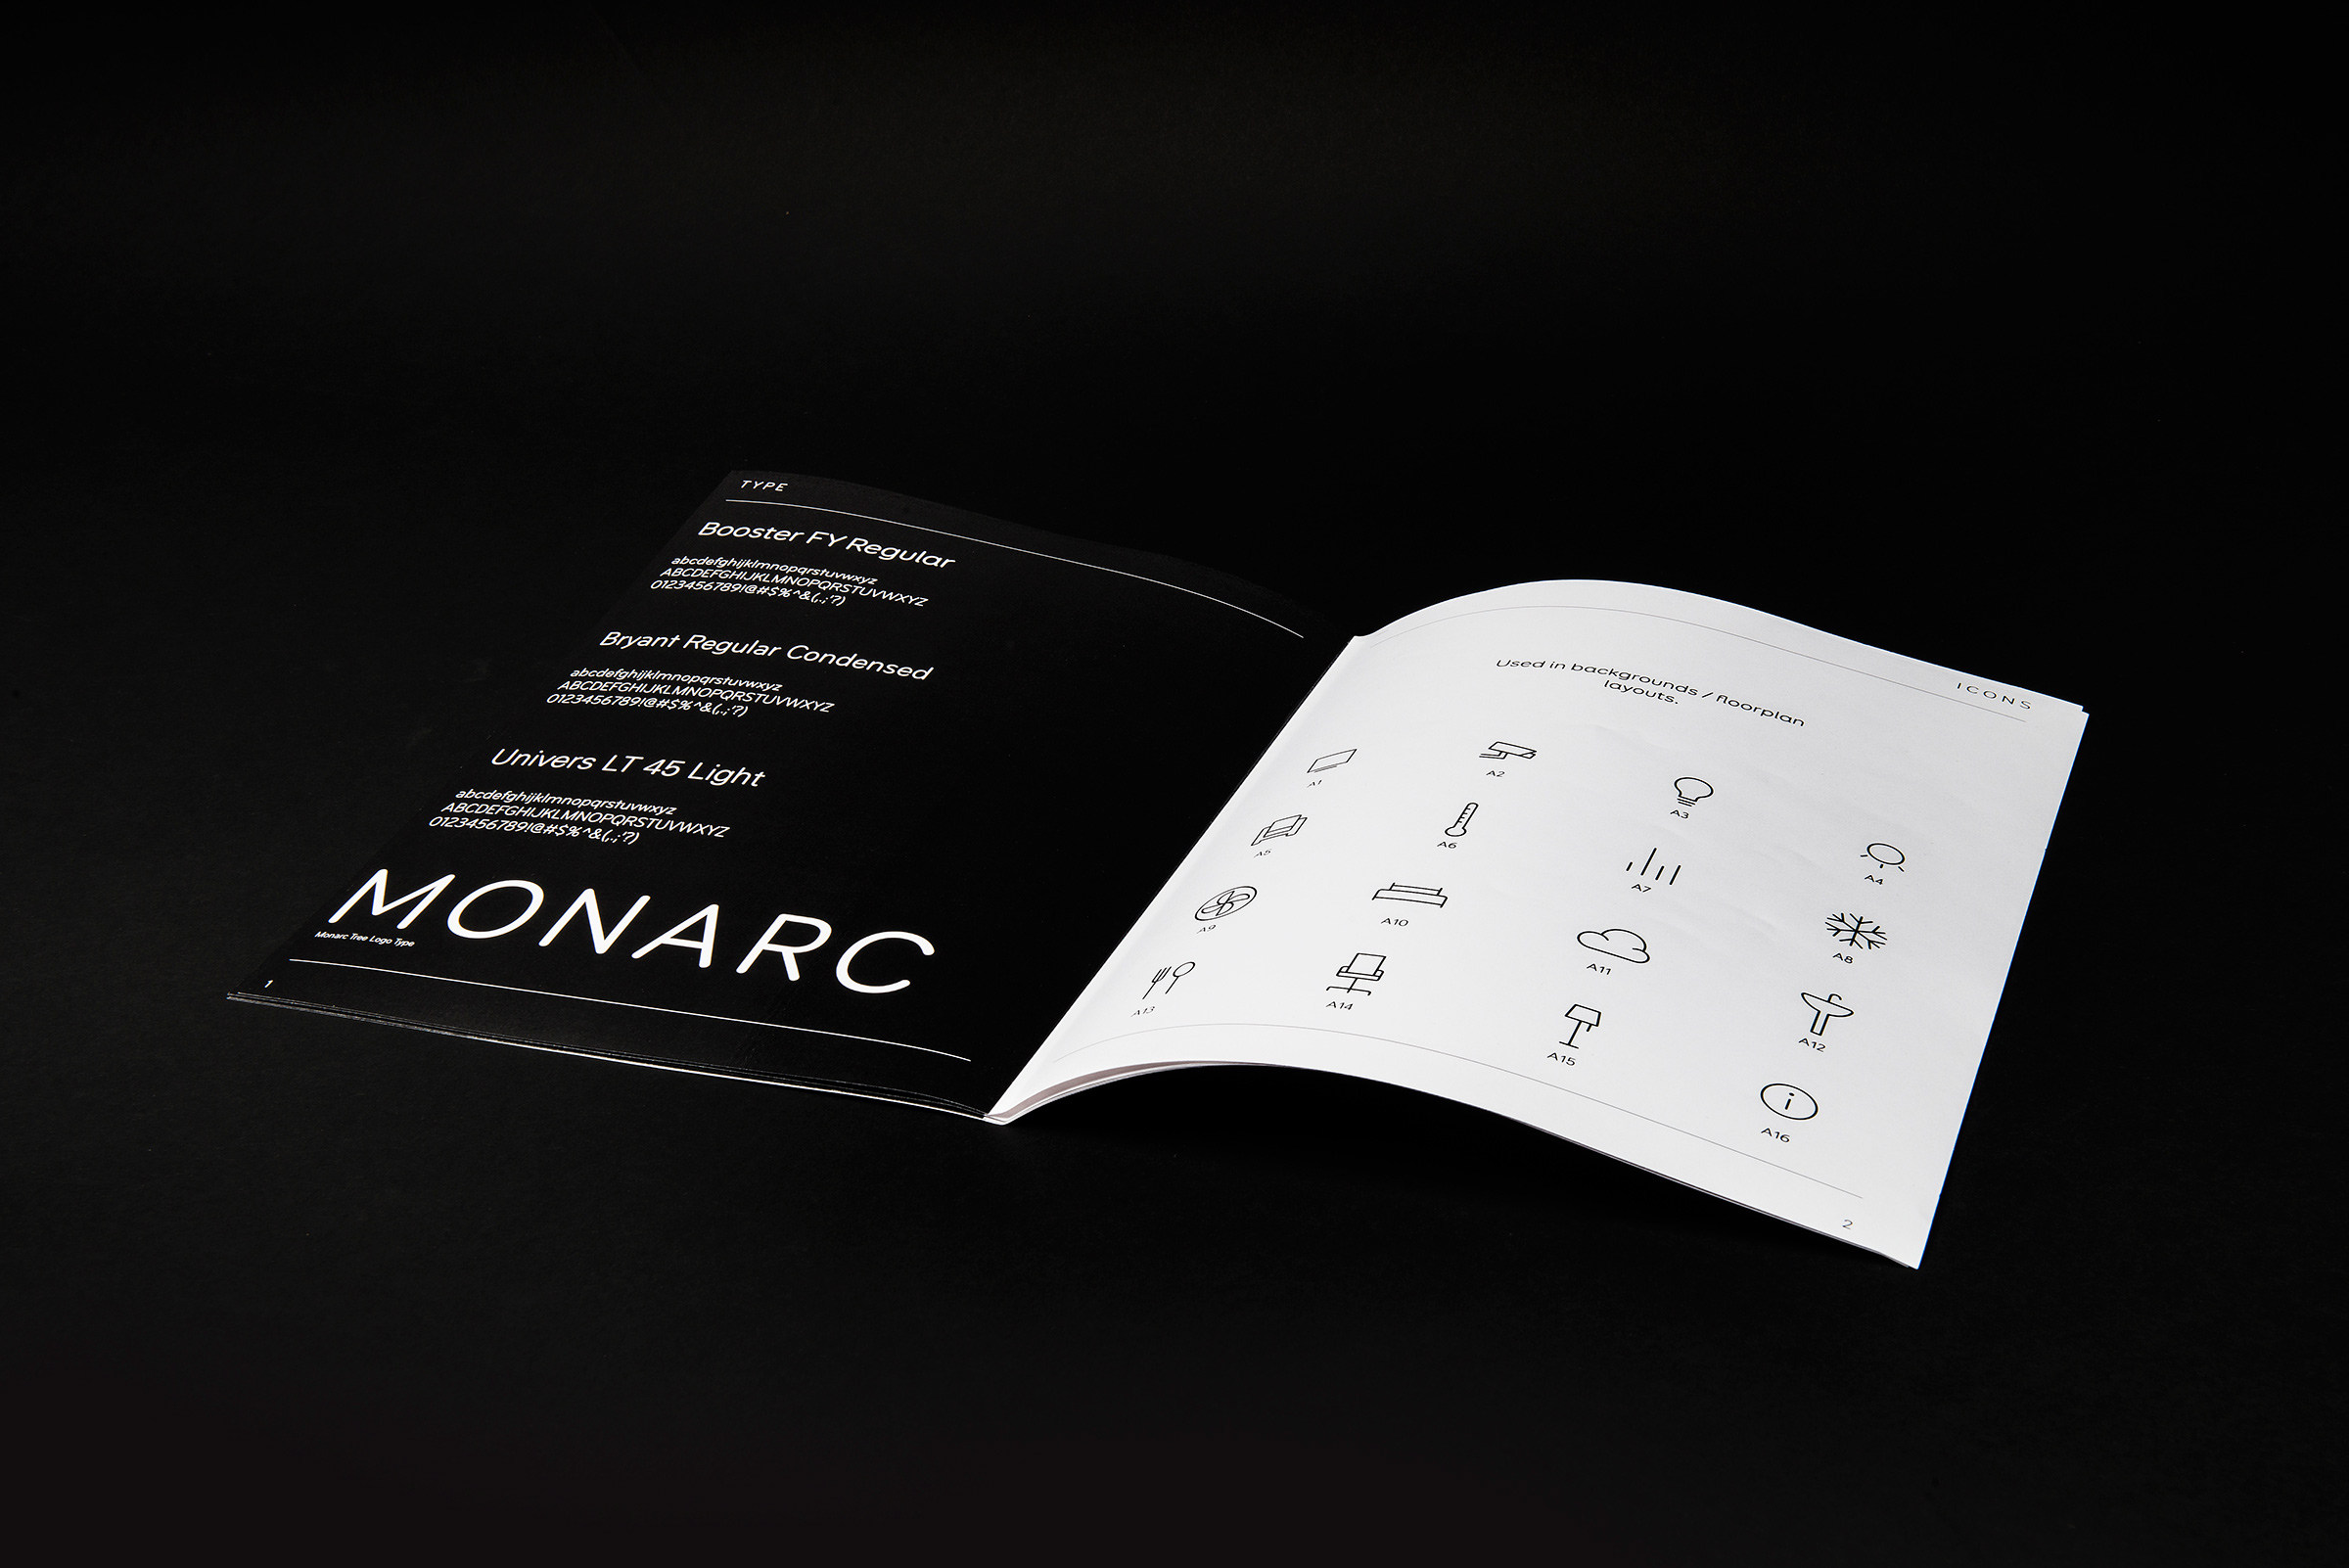 Monarc Tree style guide